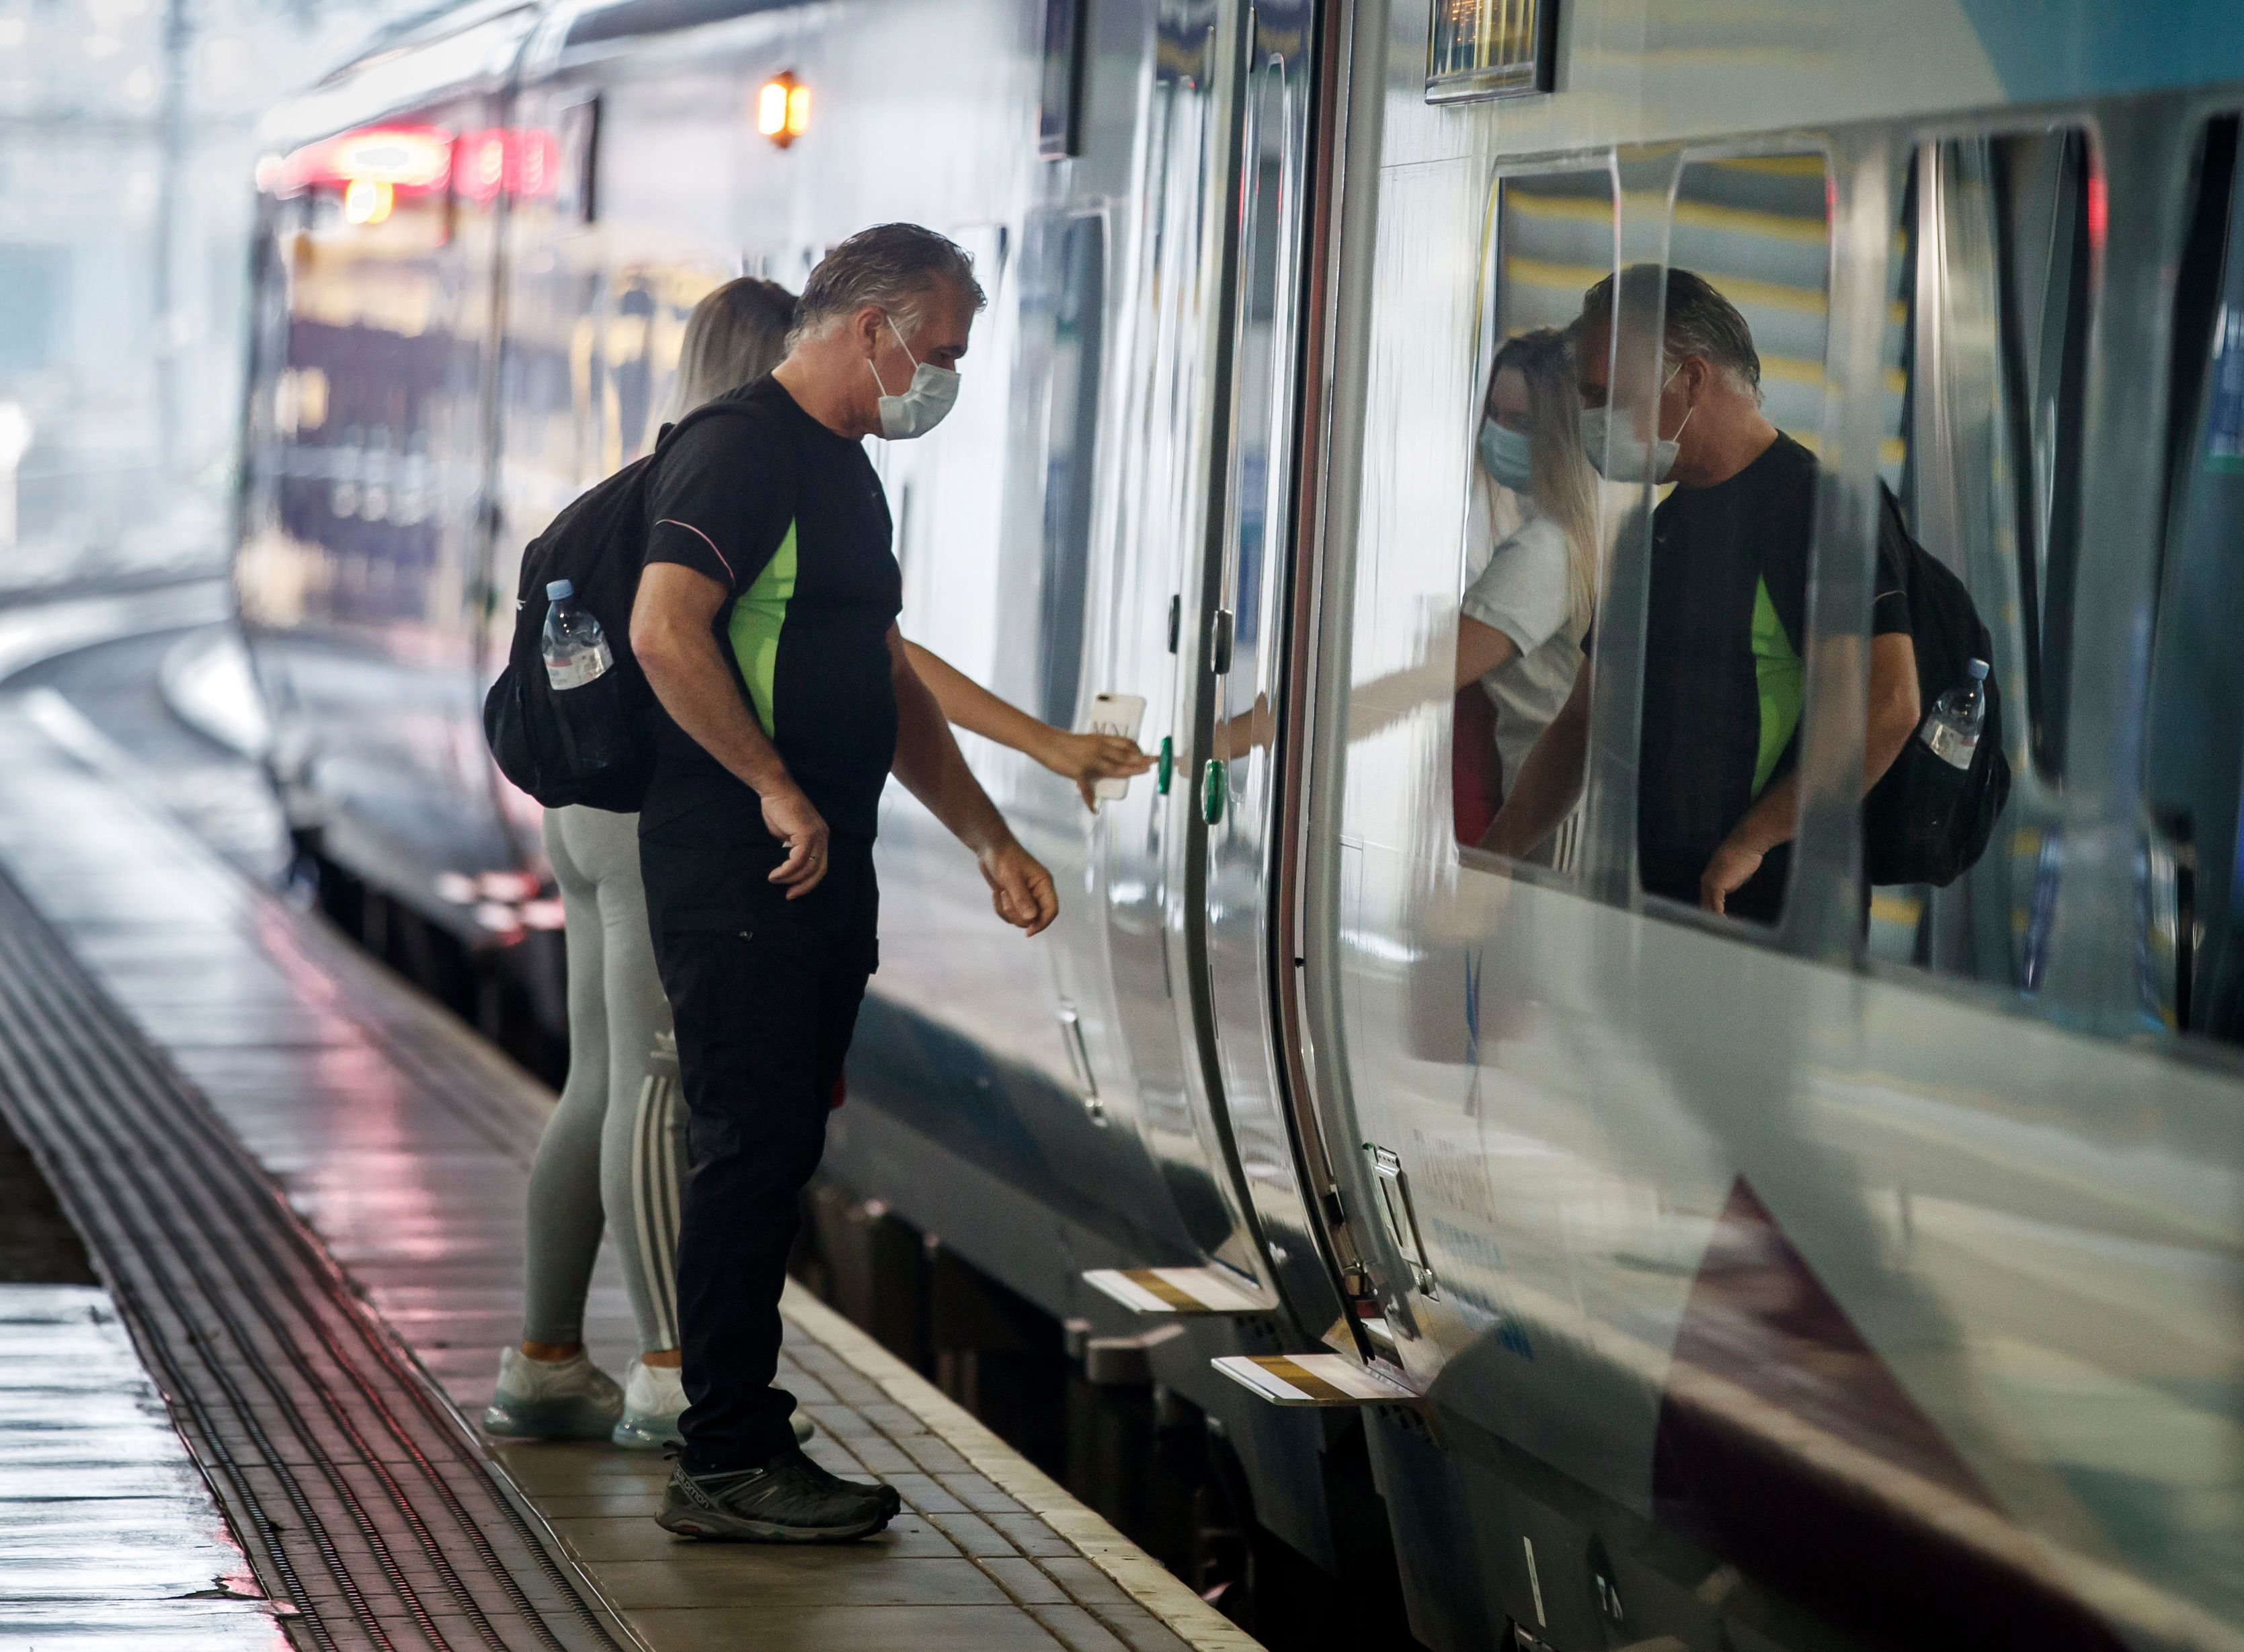 Rail firms have been told they must offer flexible railcards as people reduce office time after lockdown